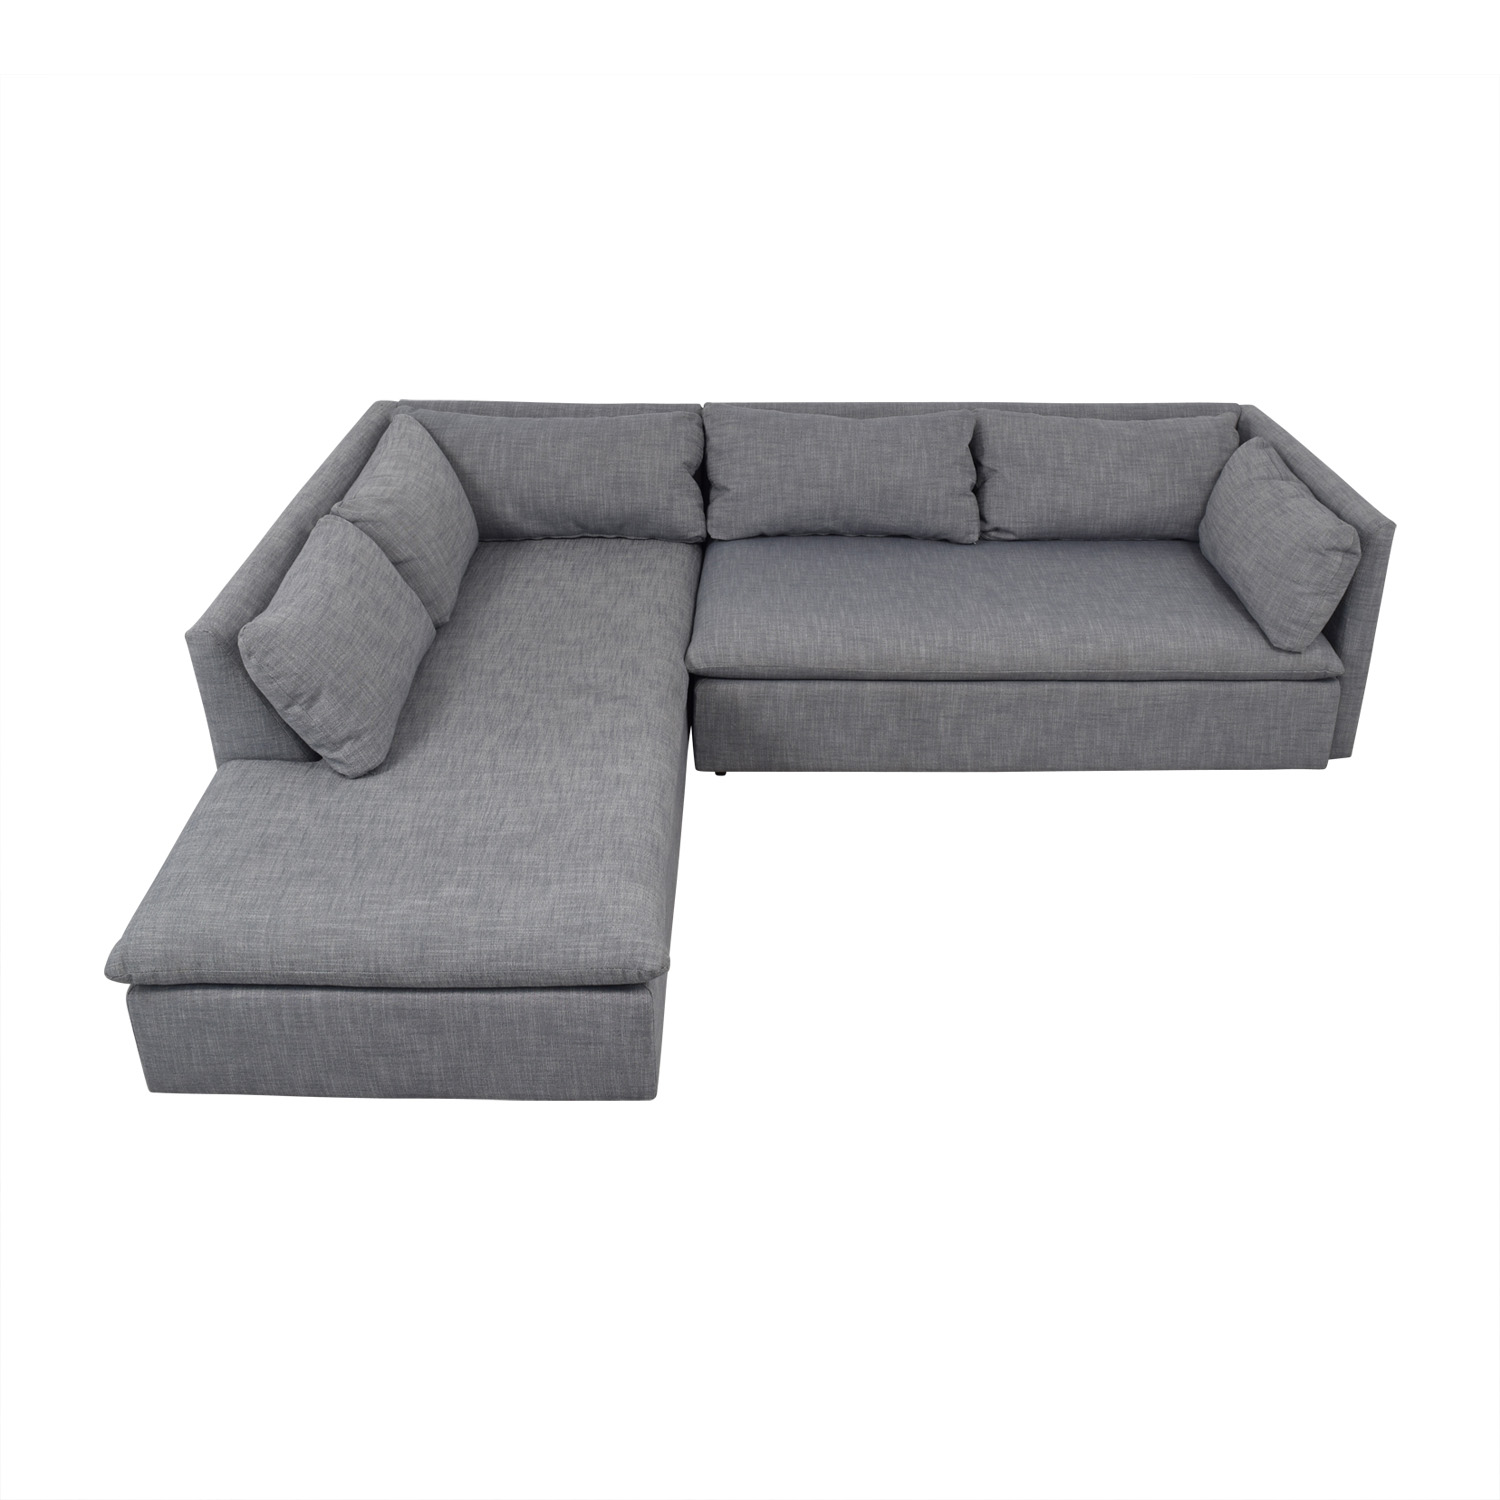 West Elm West Elm Shelter Sectional for sale